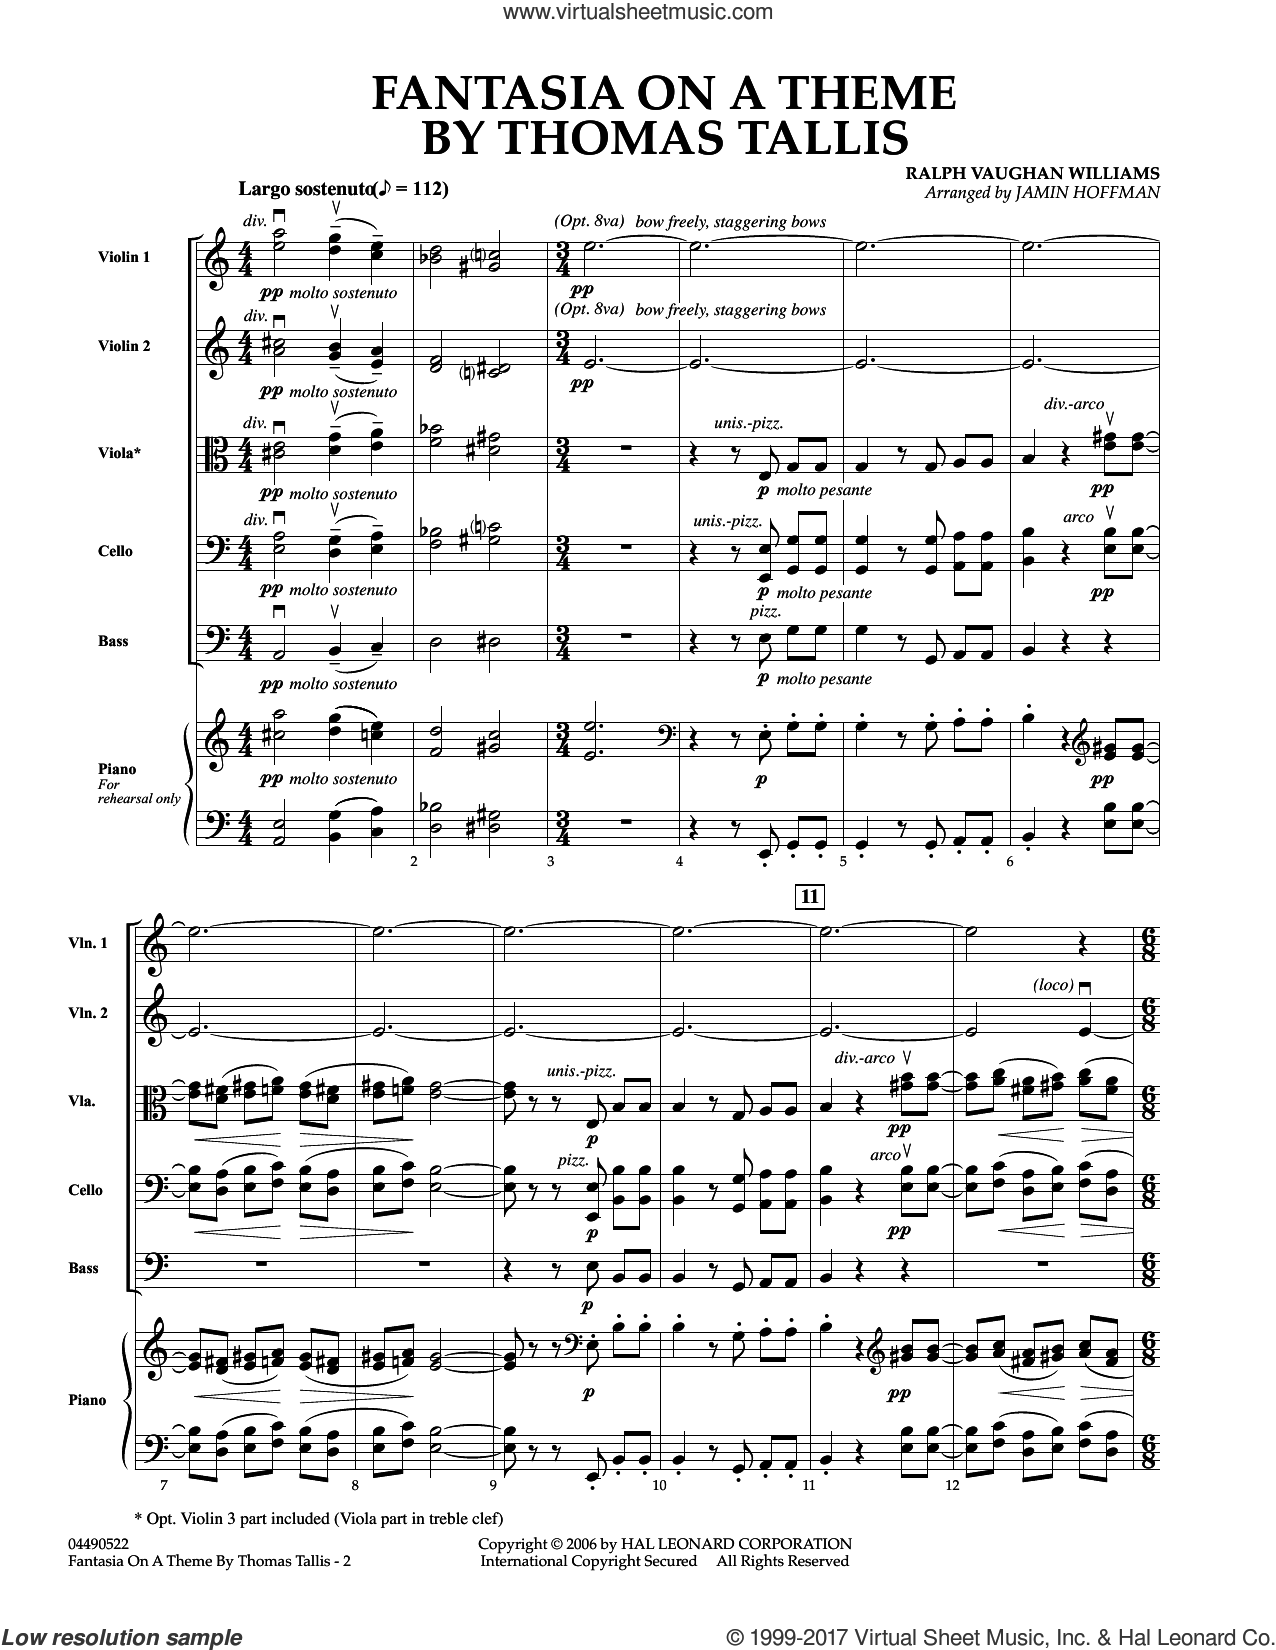 Fantasia on a Theme by Thomas Tallis (COMPLETE) sheet music for orchestra by Ralph Vaughan Williams, Jamin Hoffman and Vaughan Williams, classical score, intermediate skill level